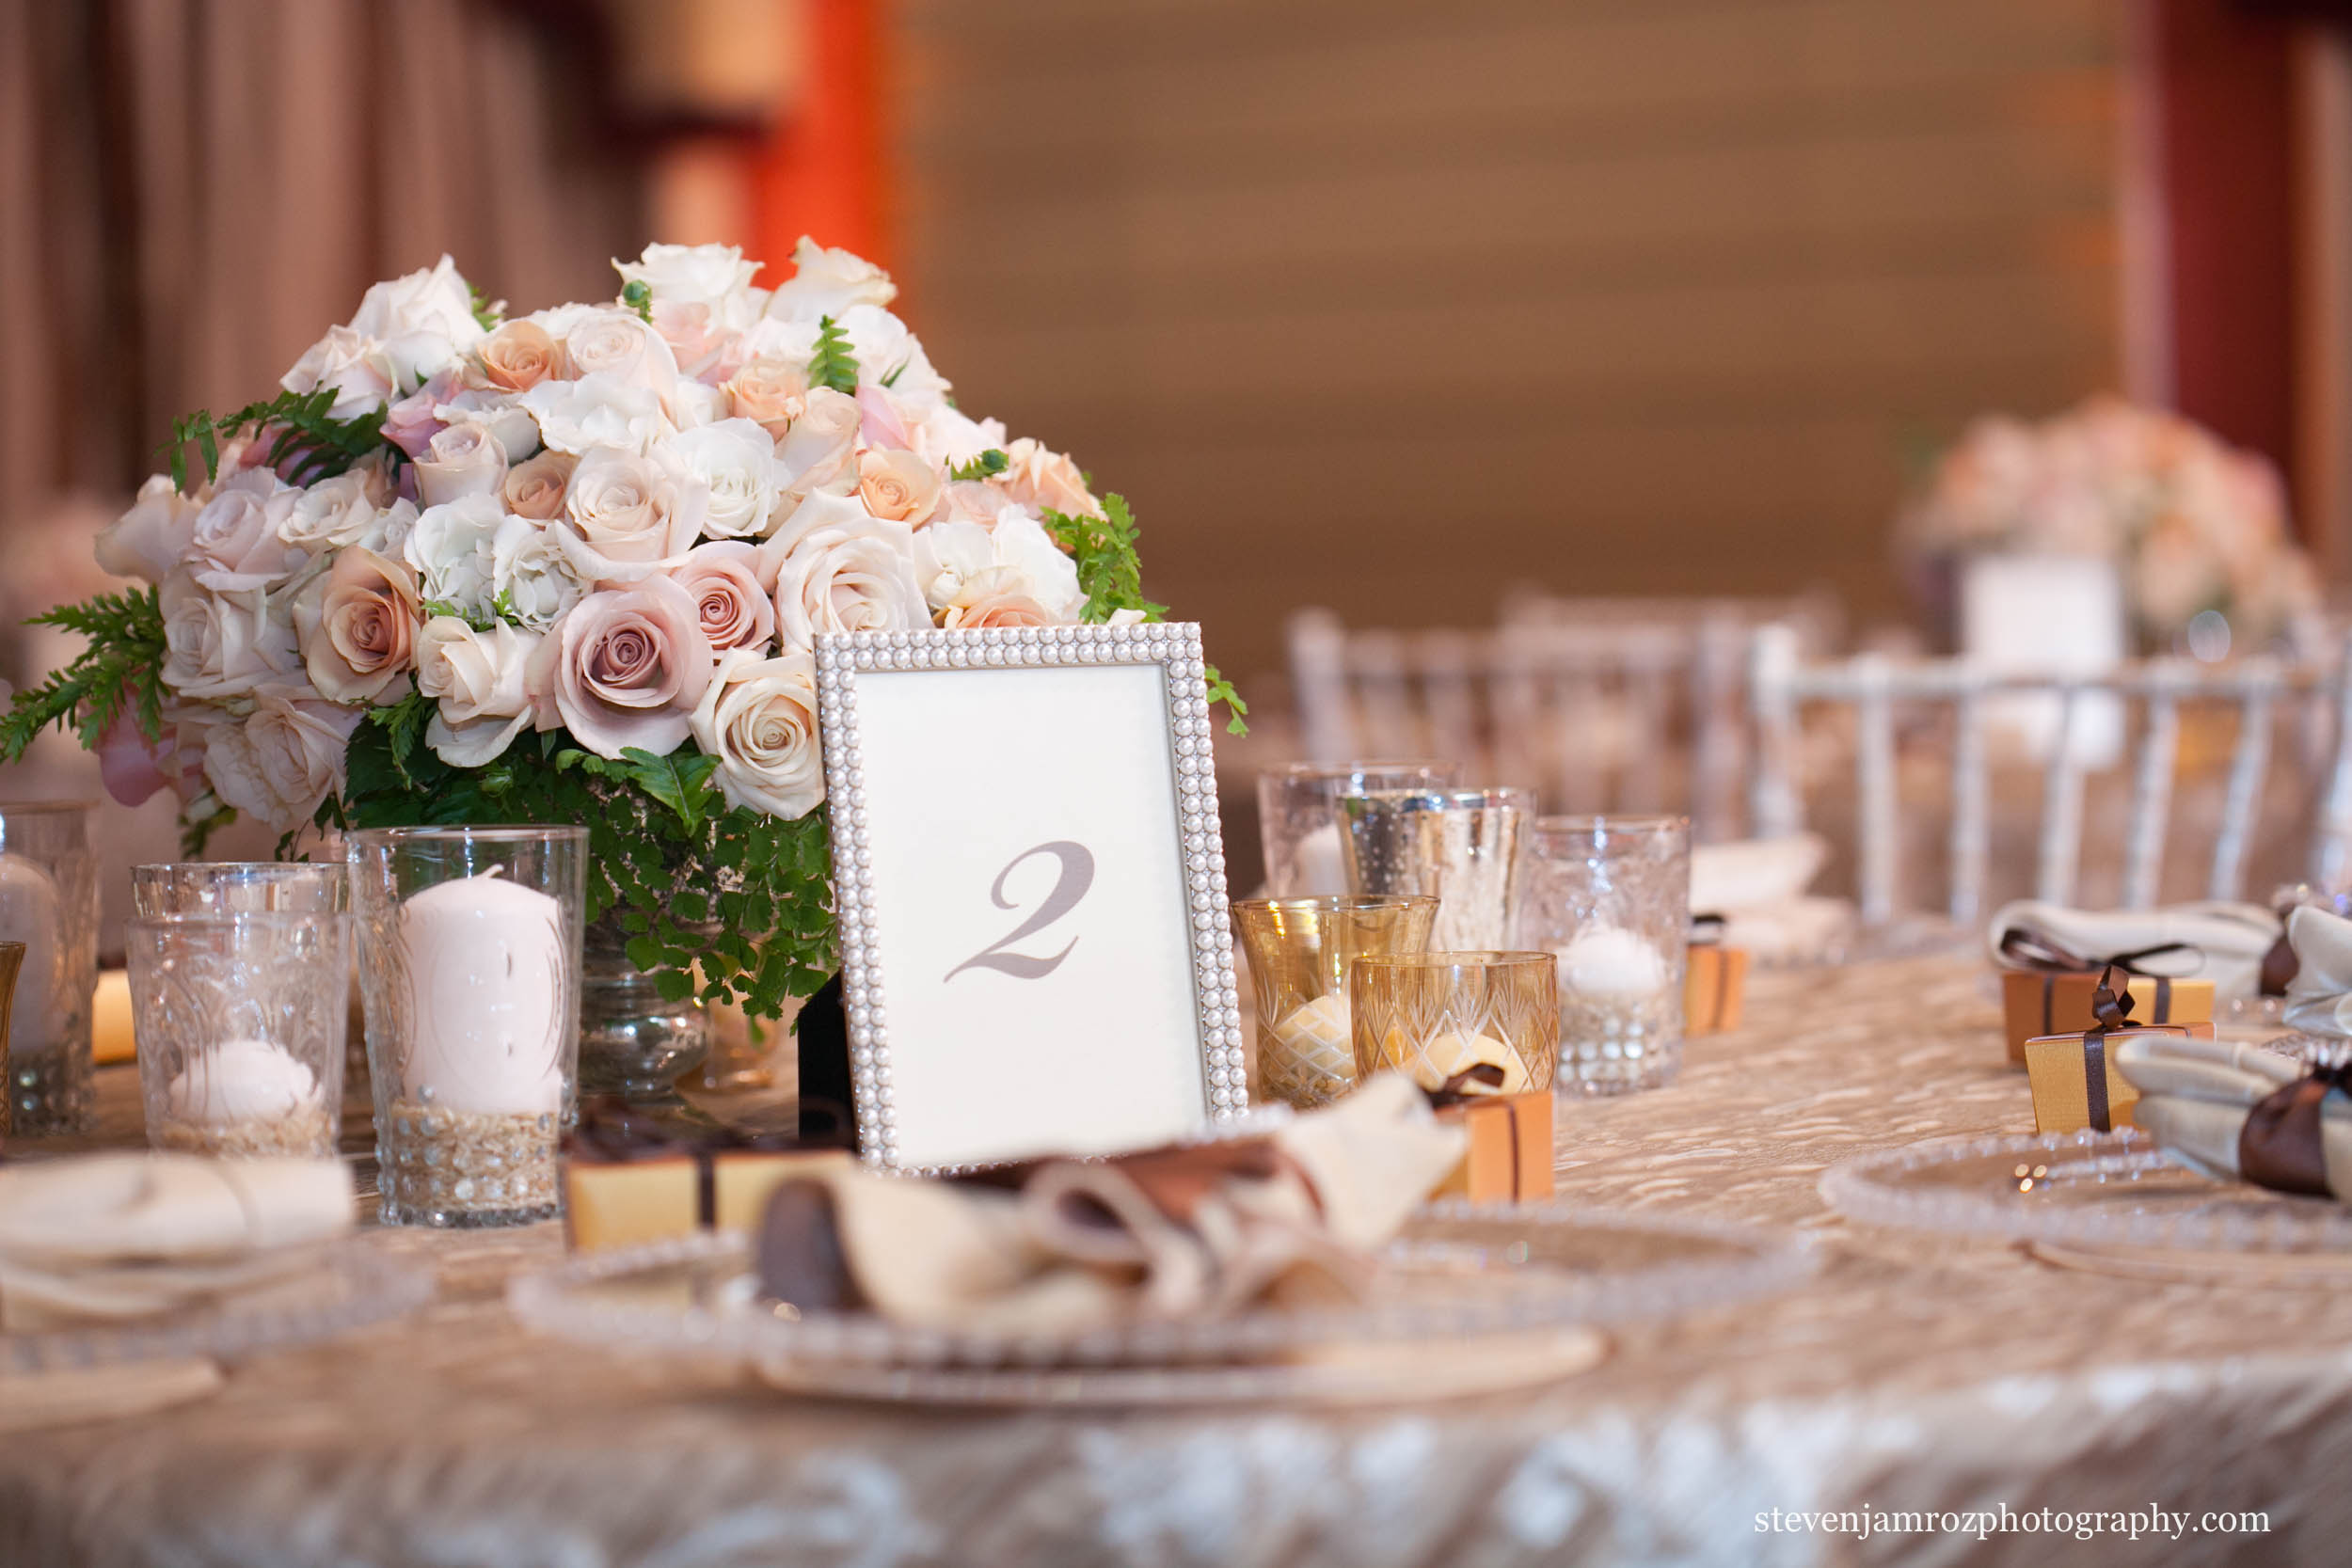 table-setting-detail-wedding-photo-steven-jamroz-photography-0406.jpg